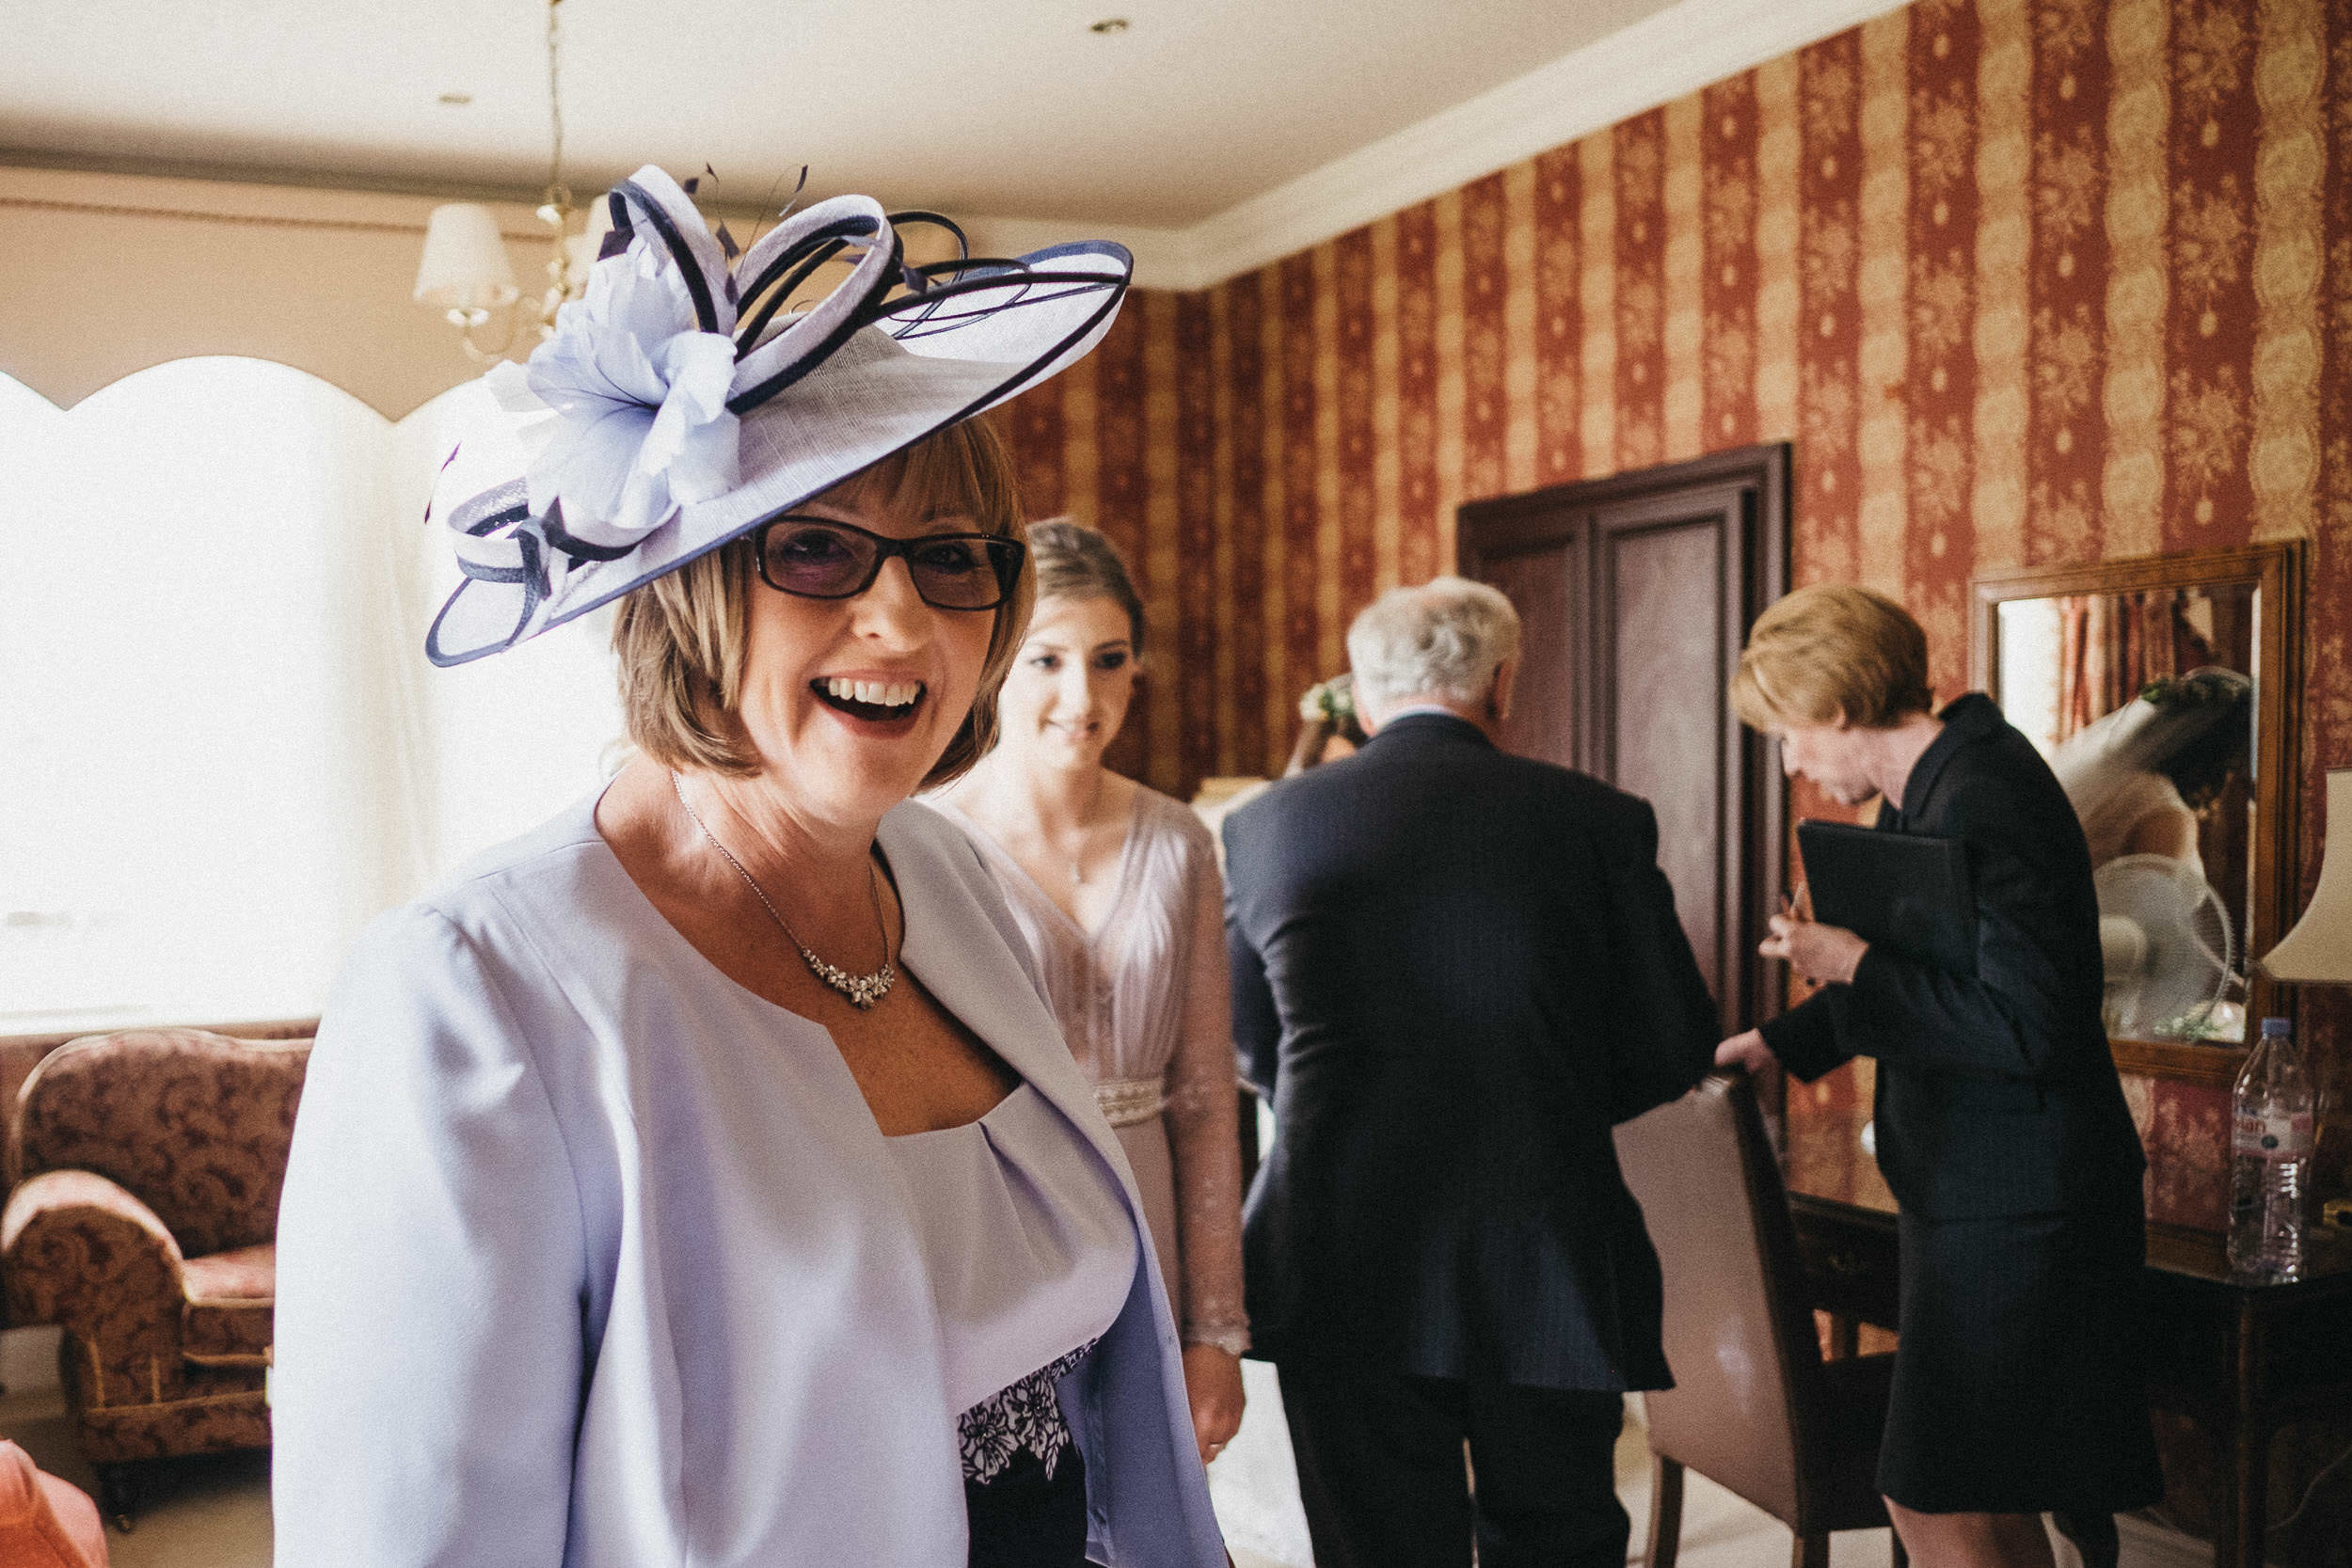 Mother of the groom laughing before ceremony